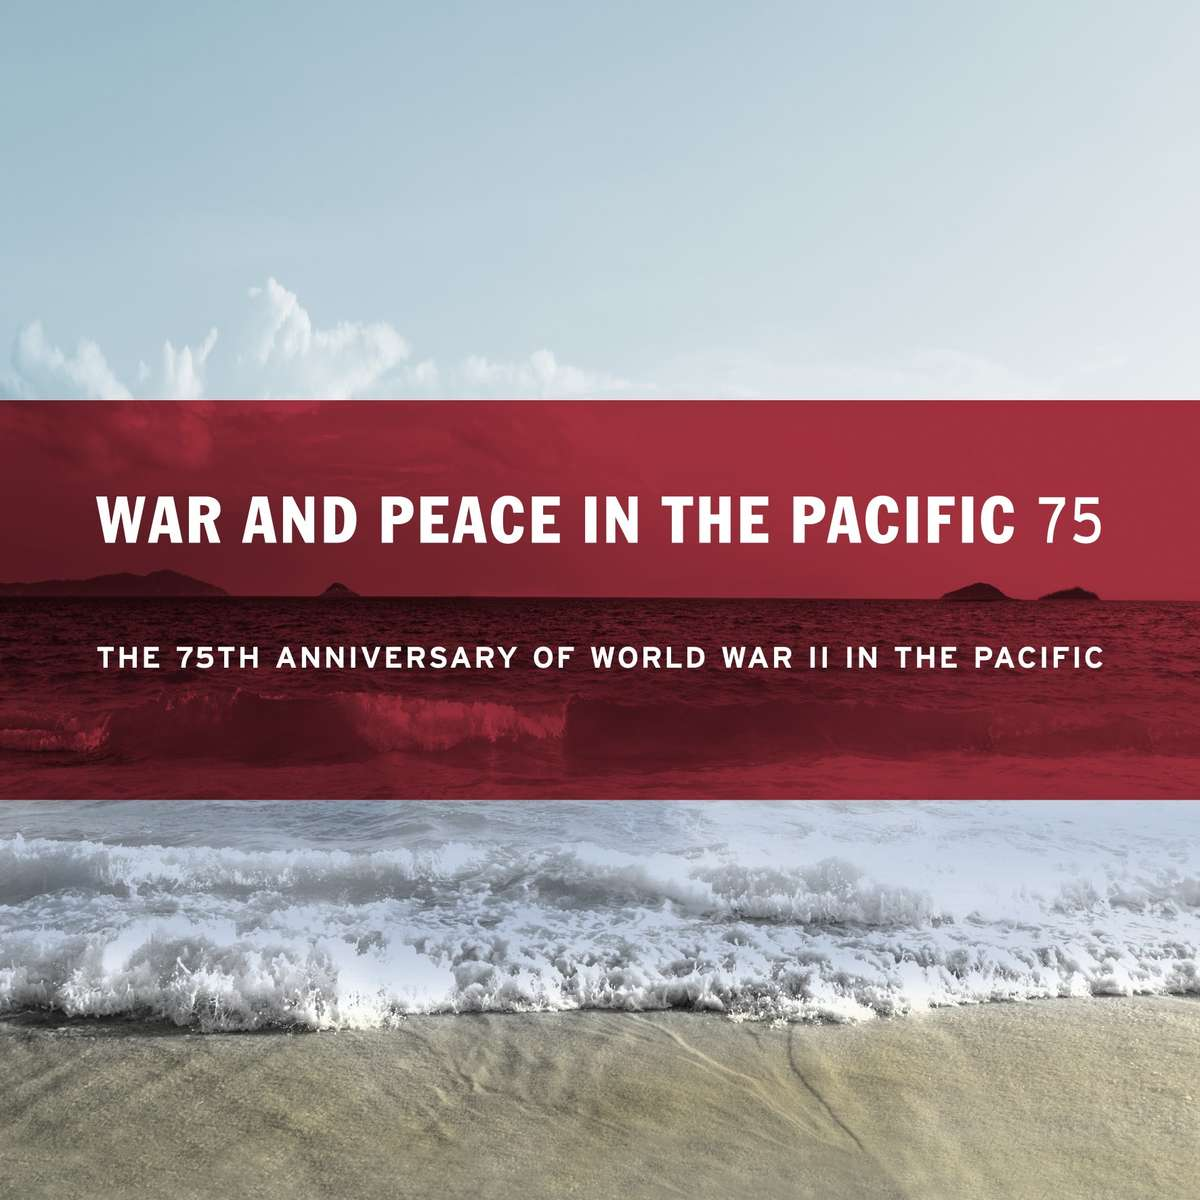 War and Peace in the Pacific 75 - a series of programs to commemorate significant 75th anniversaries of World War II. Image: ANMM.